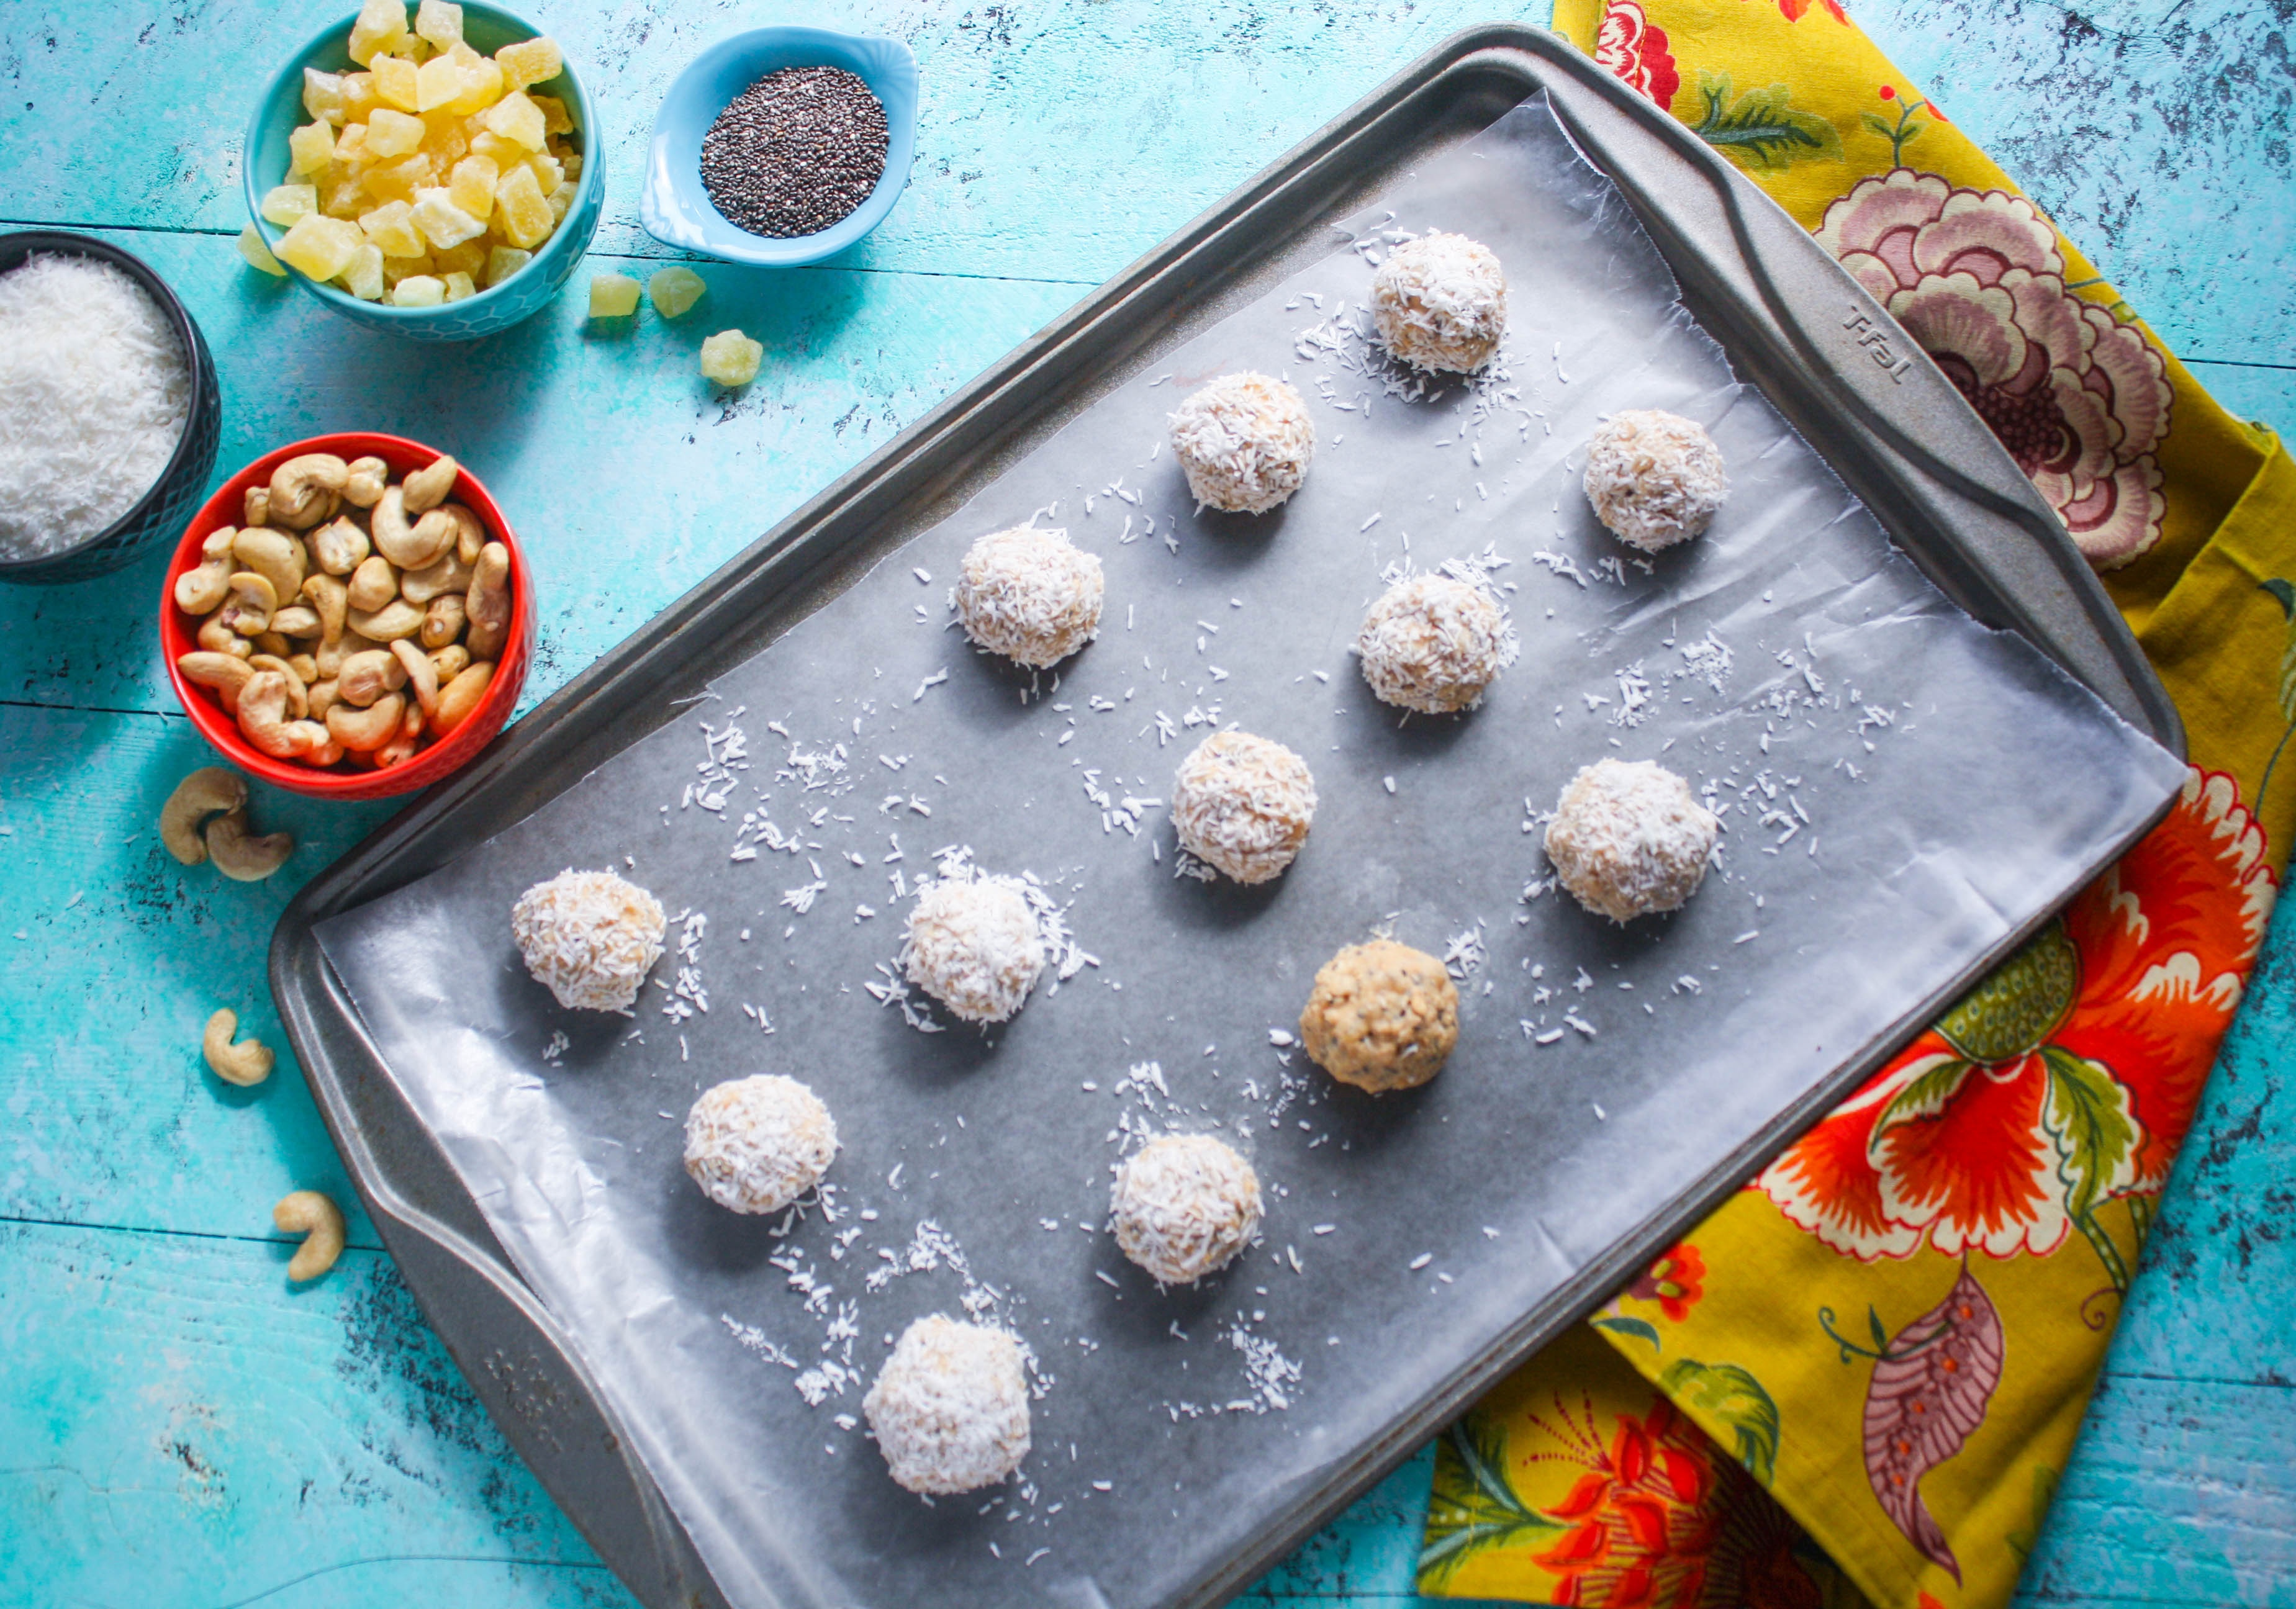 No bake coconut, cashew, and pineapple energy bites make a fabulous snack! These no bake bites are a real treat!